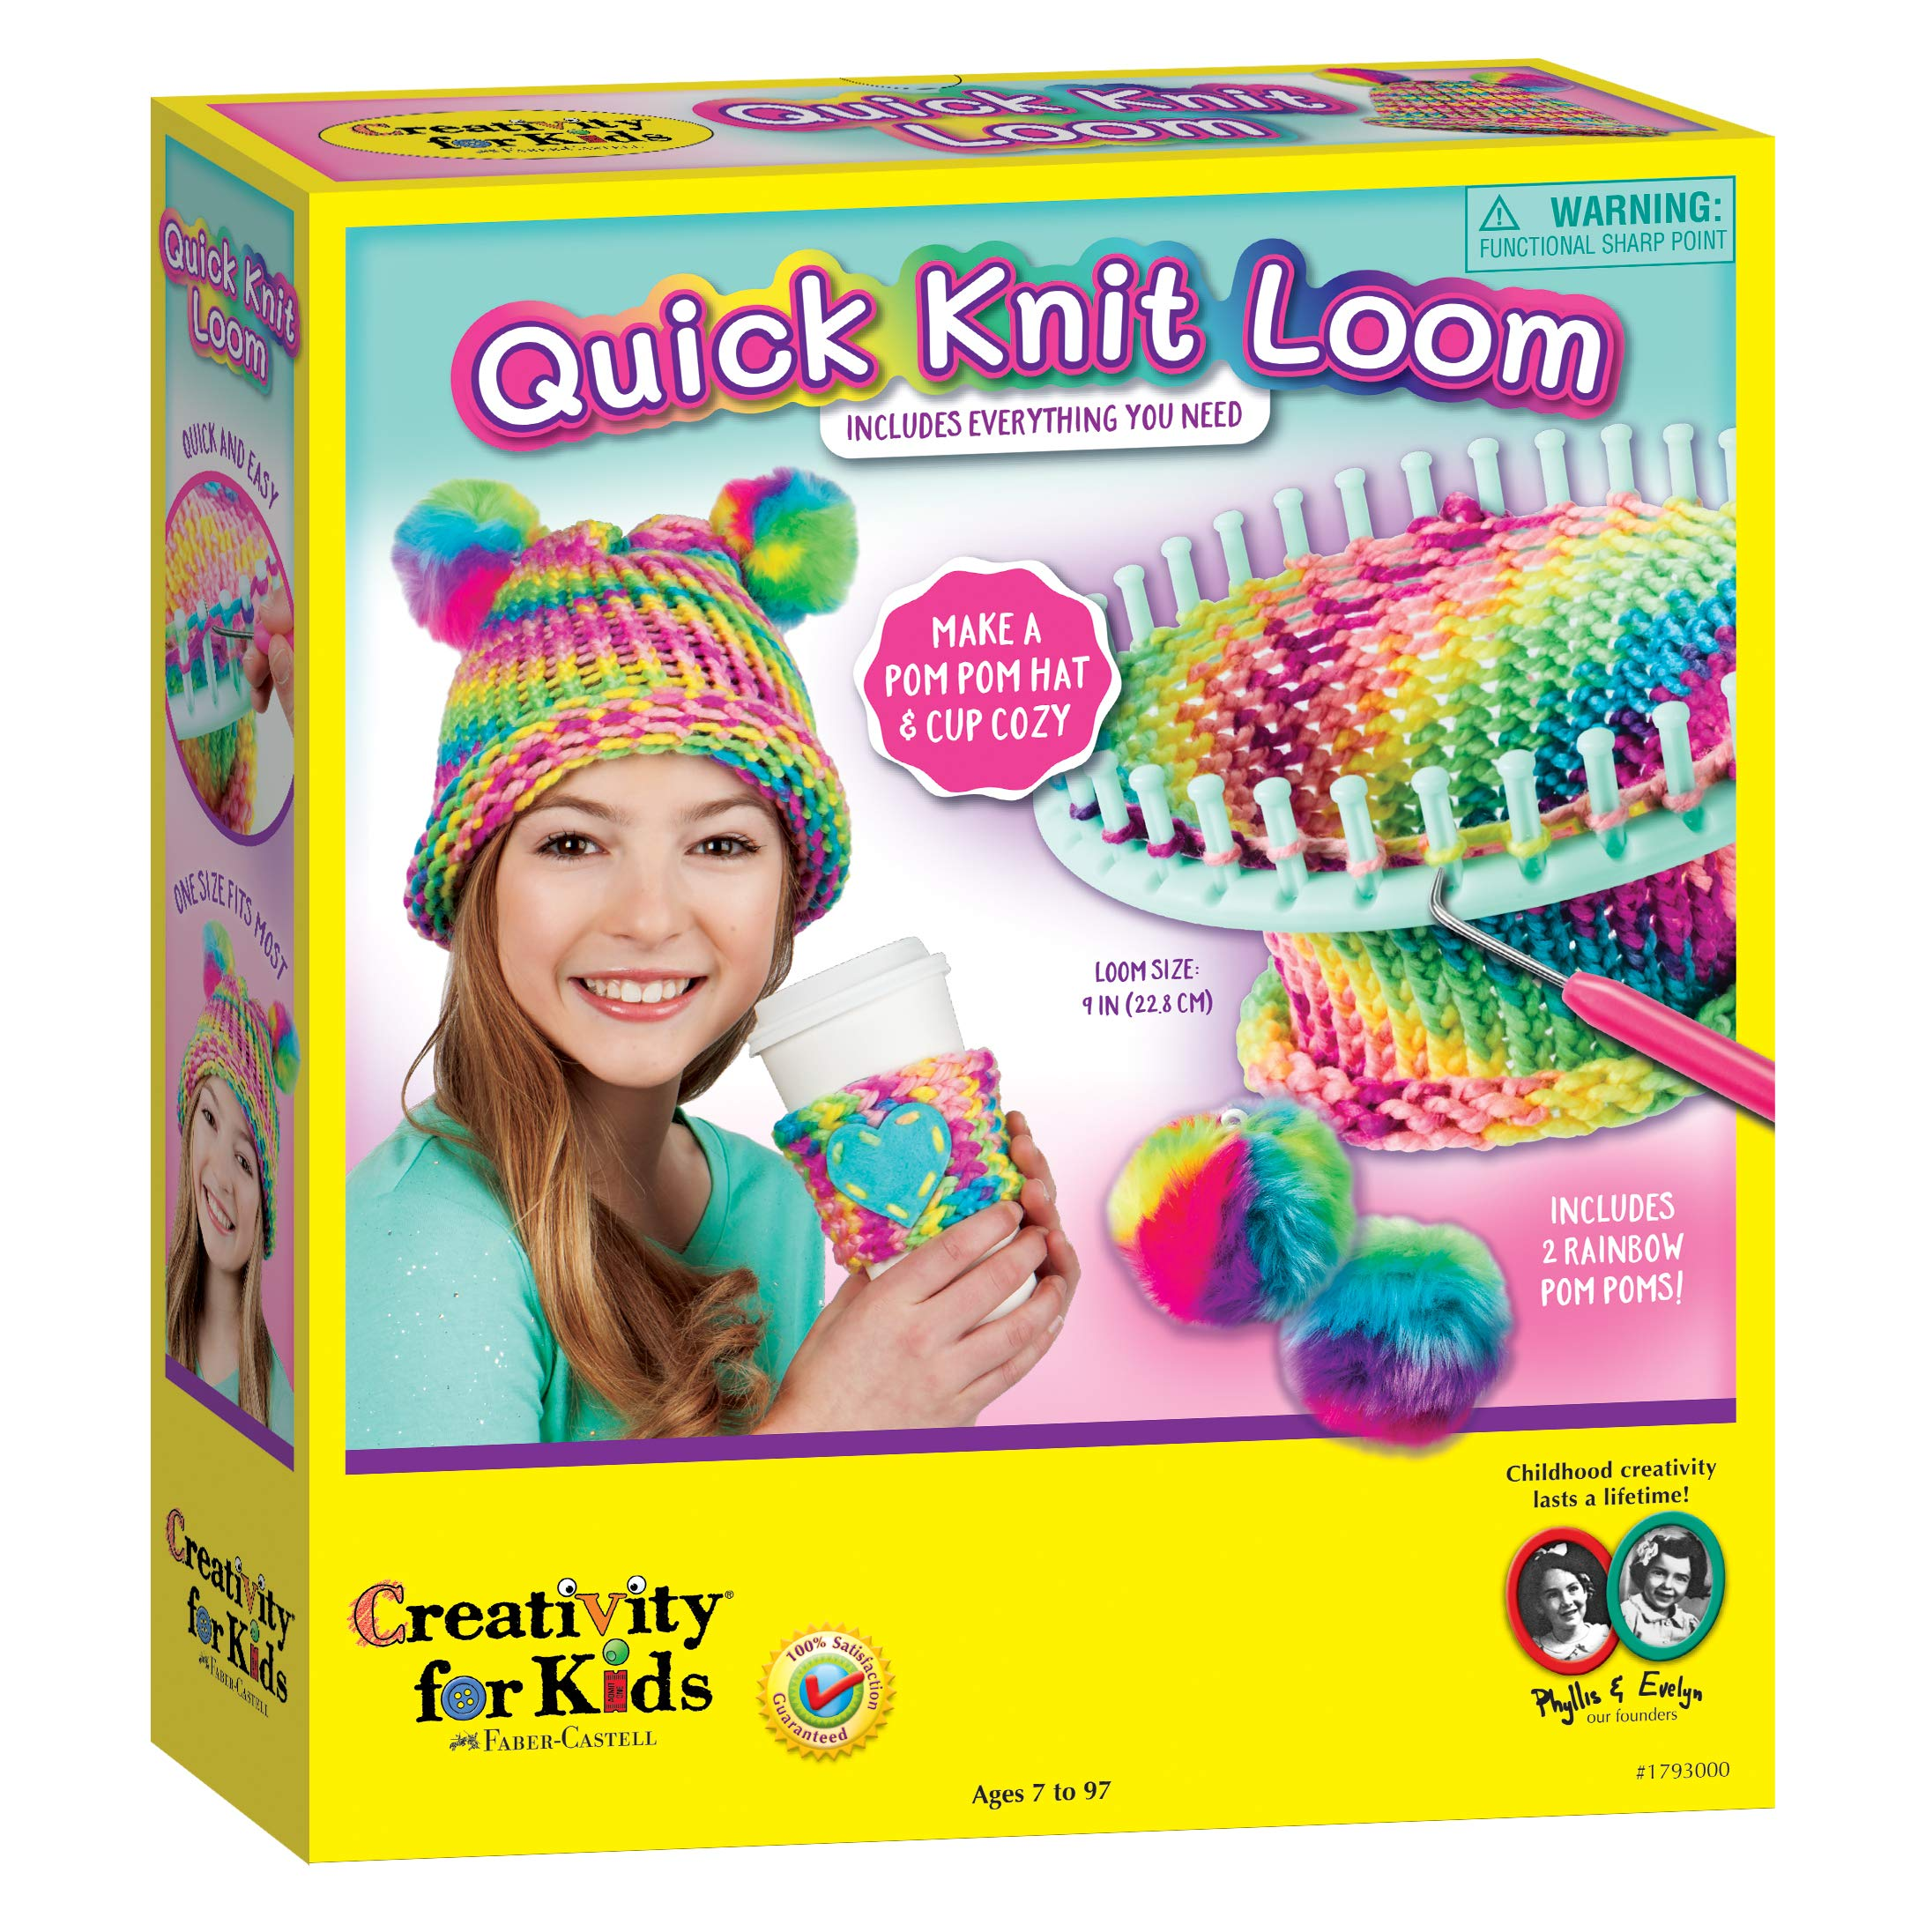 Creativity for Kids Quick Knit Loom - Make Your Own Pom Pom Hat And Accessories For Beginners (Packaging May Vary) by Creativity for Kids